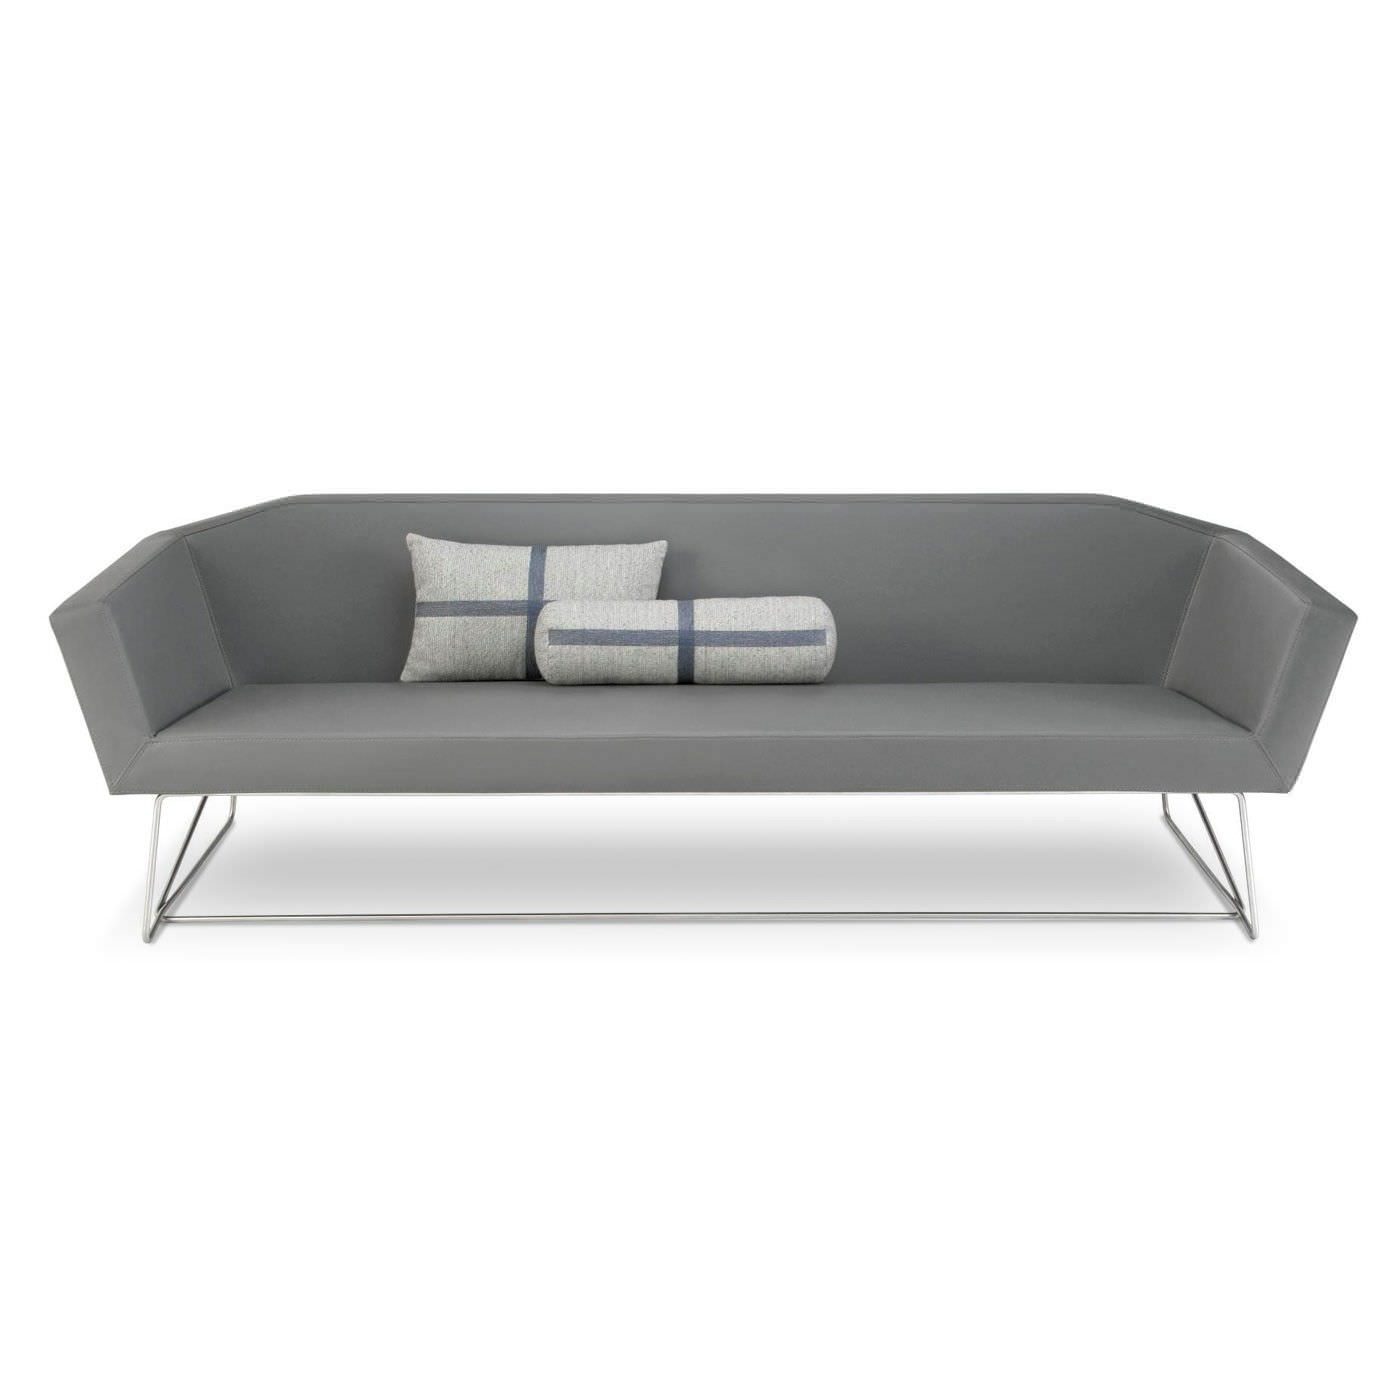 Contemporary sofa / leather / stainless steel / white - SWEPT - BLU DOT